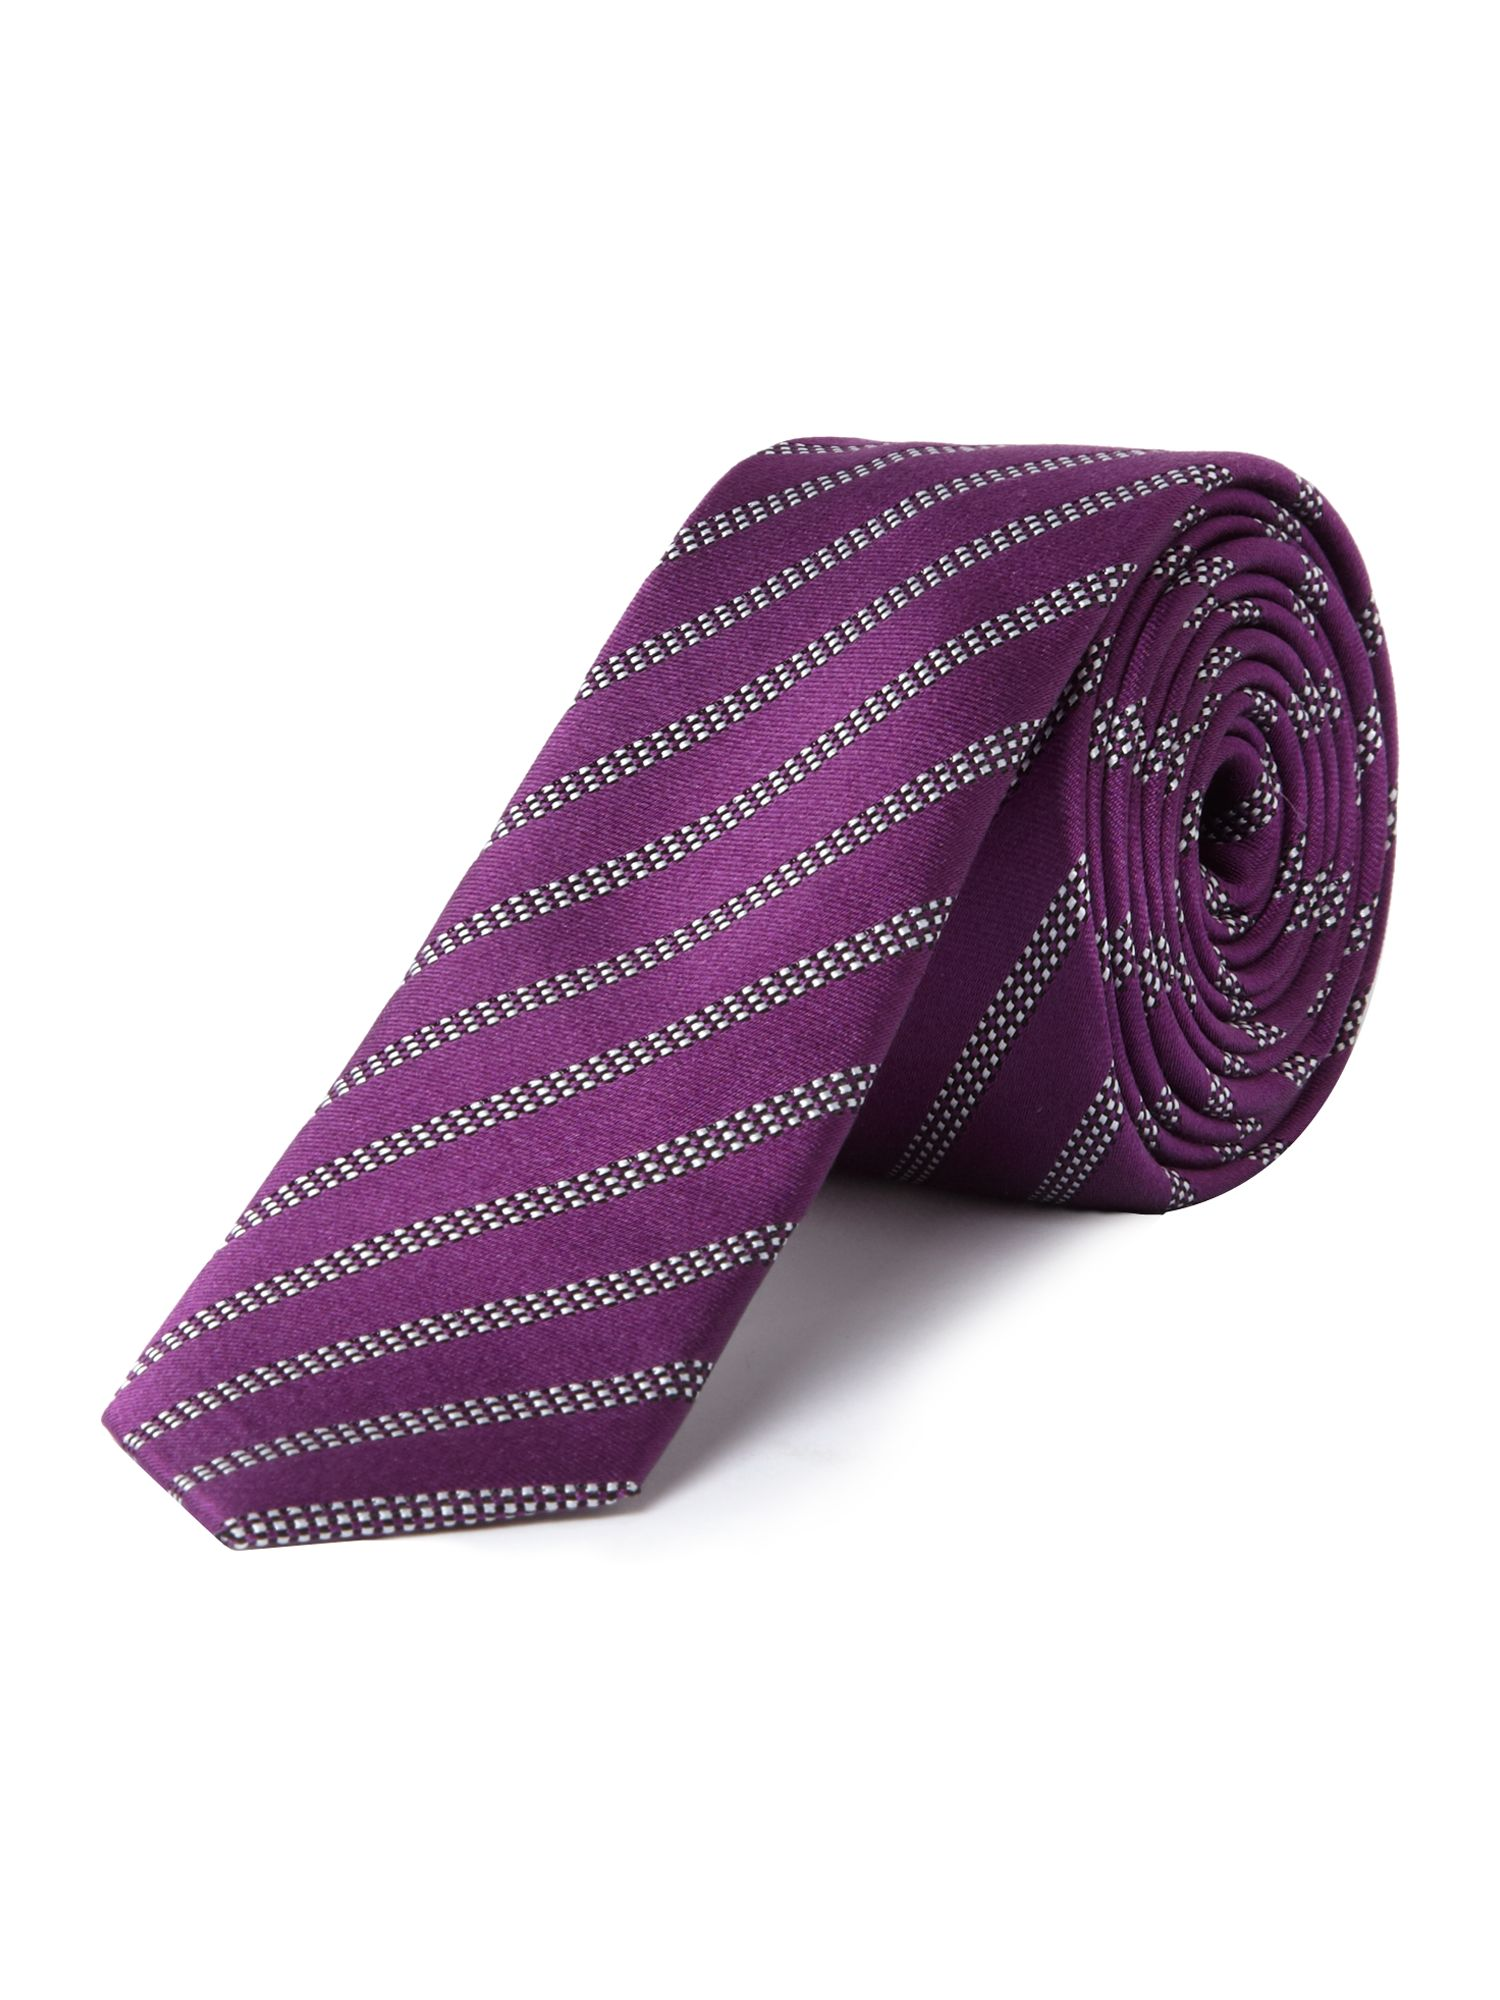 Broken geometric stripe tie